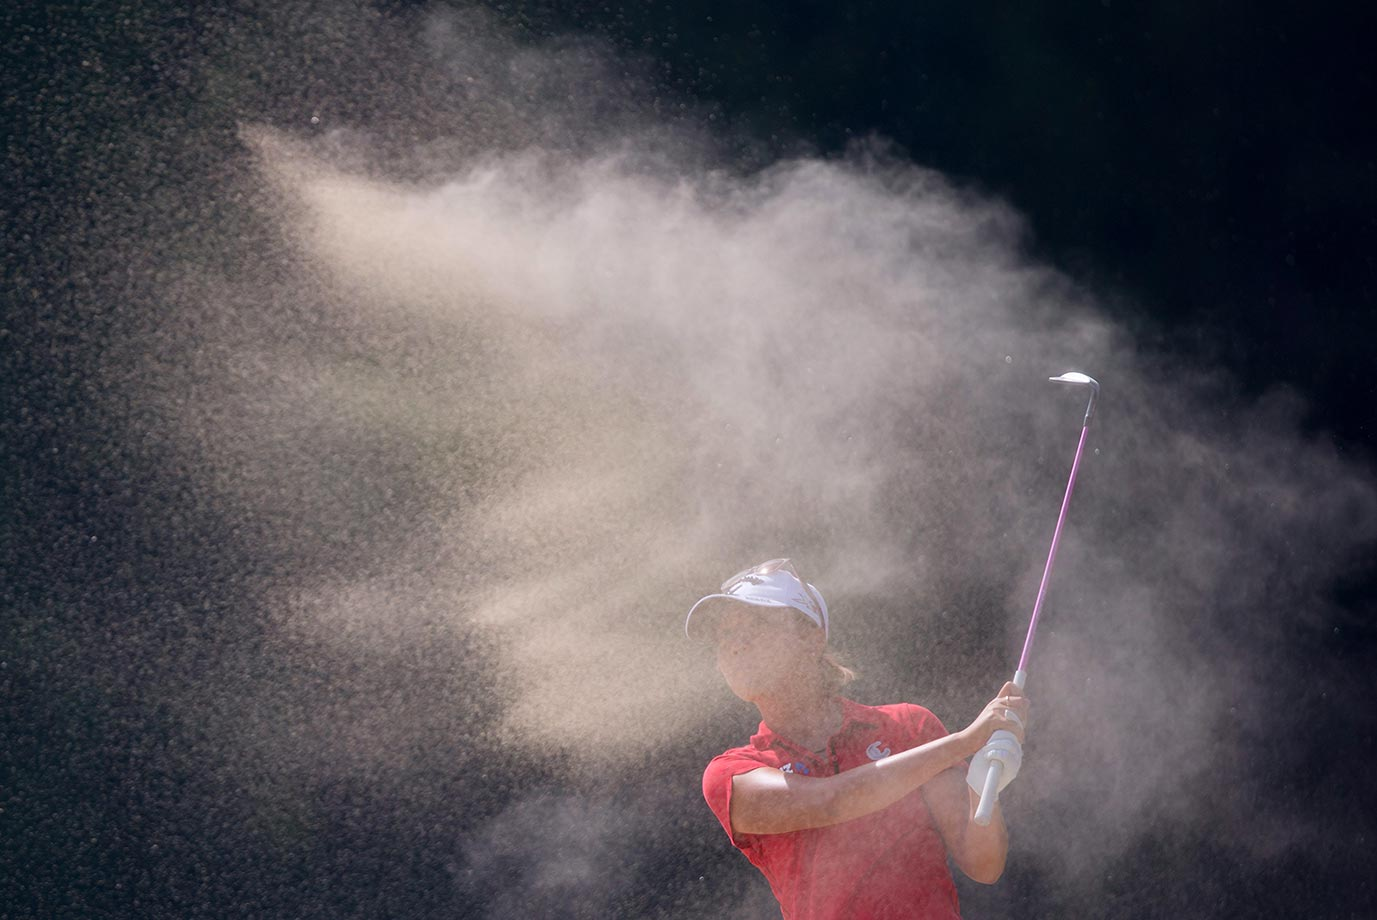 Lydia Ko hits out of a bunker on the fourth hole during the final round of the Canadian Pacific Women's Open golf tournament at Vancouver Golf Club.